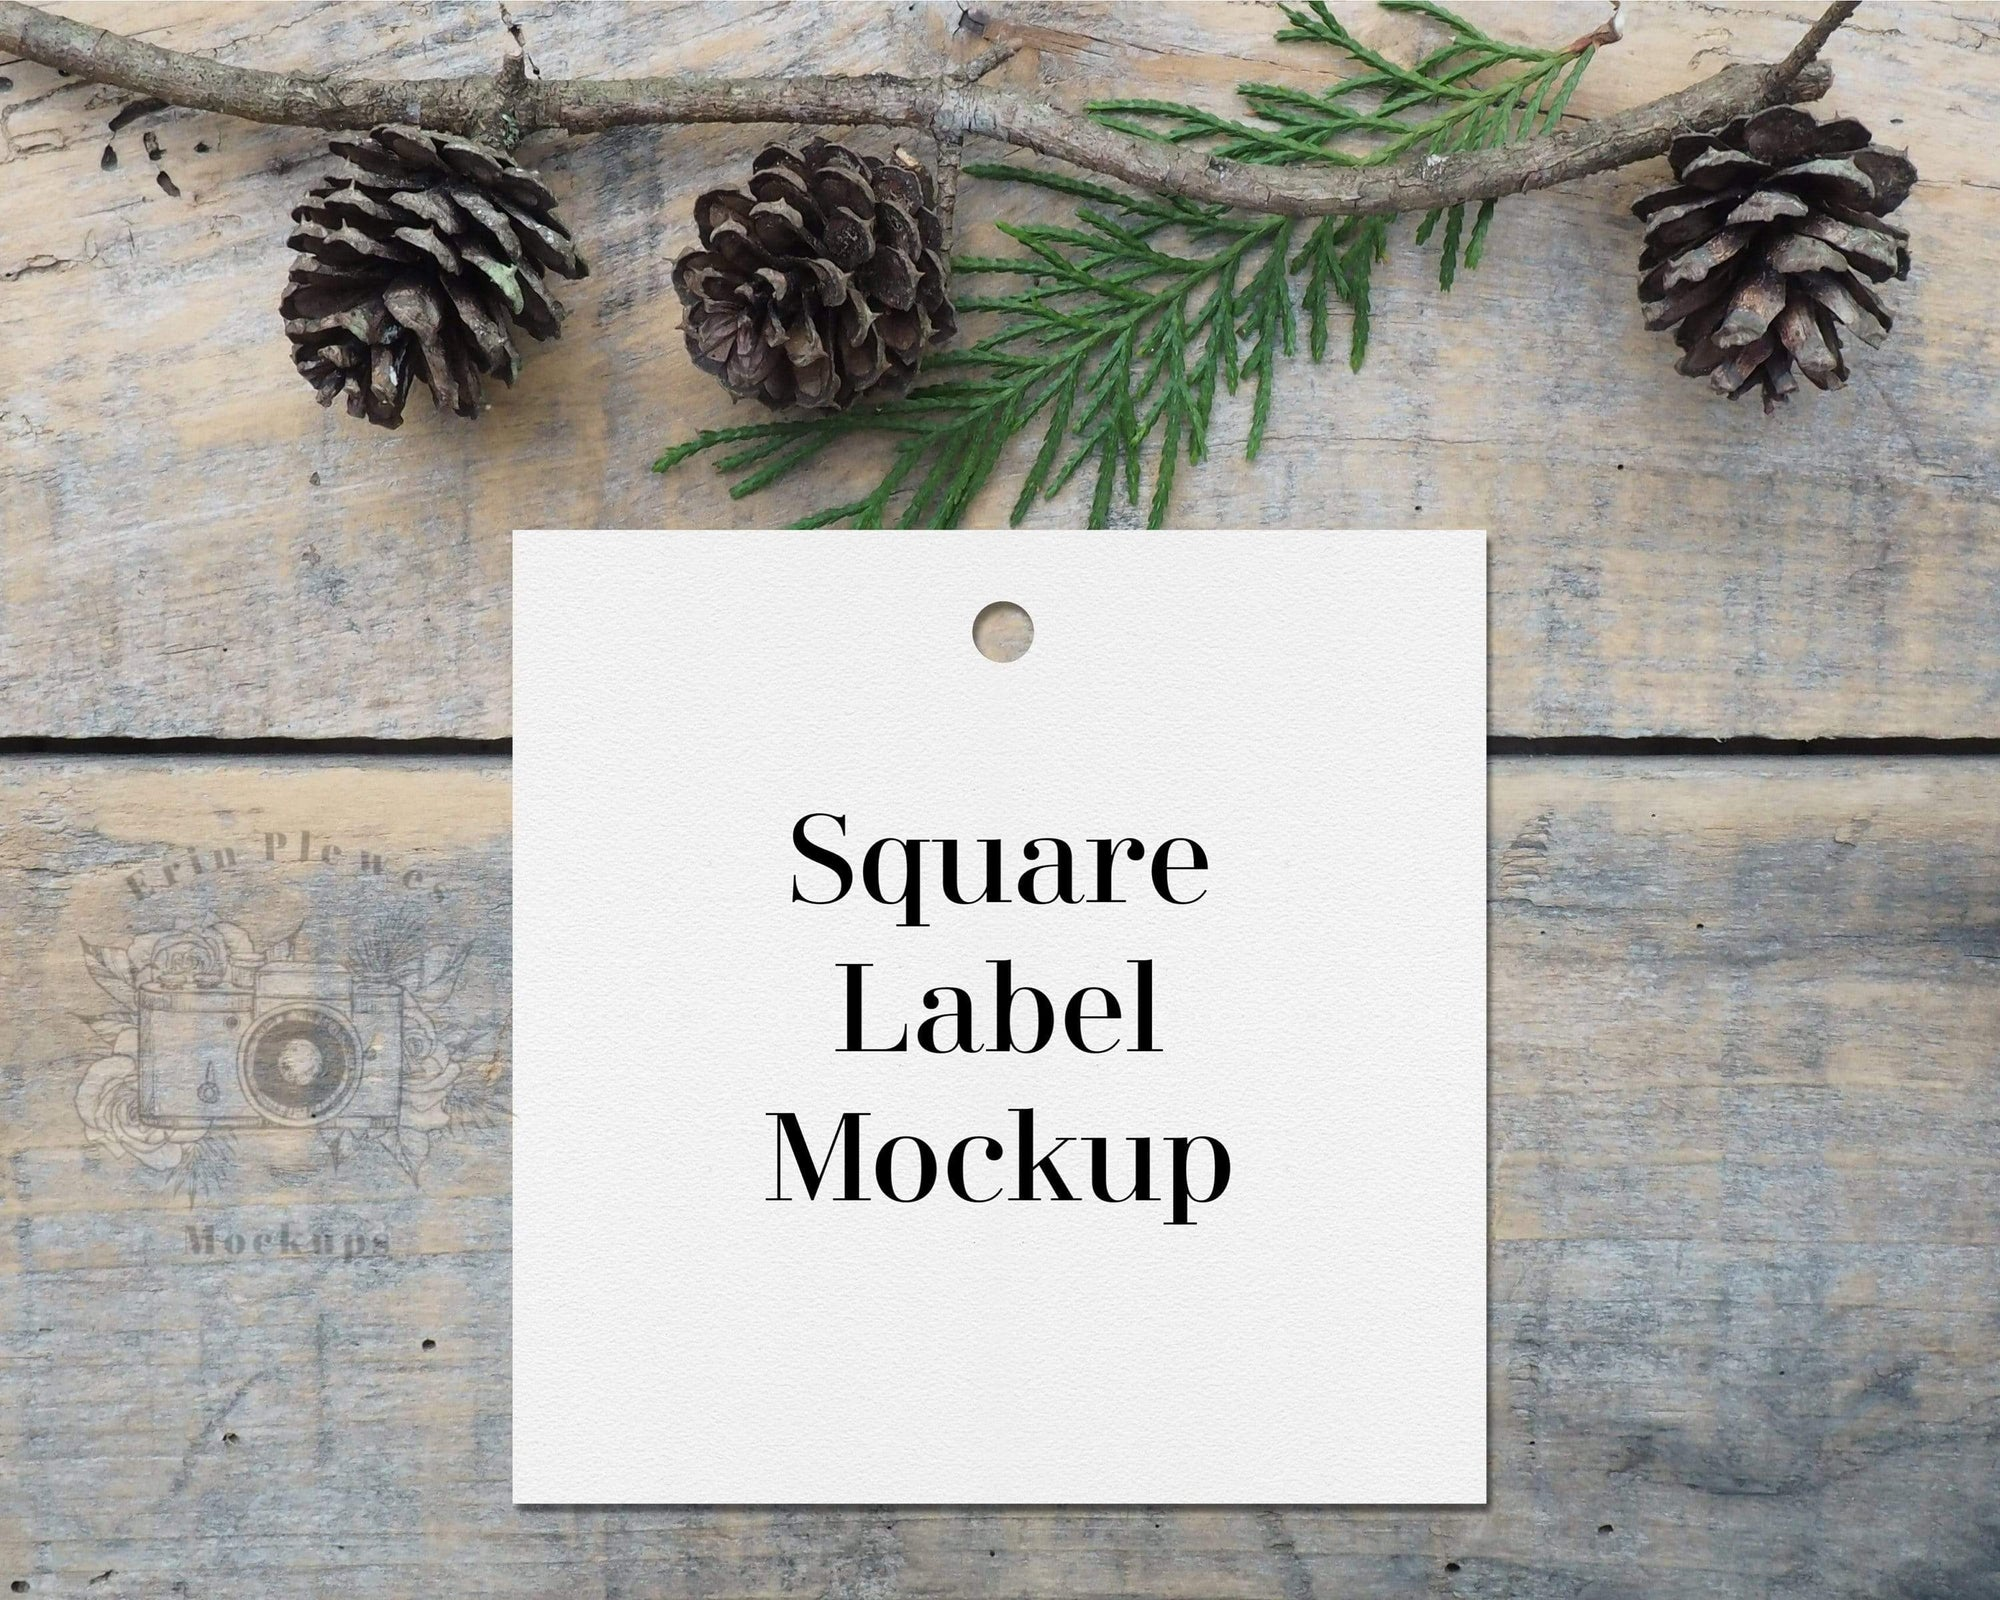 Erin Plewes Mockups Square label mockup, Christmas gift tag mock up for presents and Wedding stock photography, Jpeg instant Digital Download